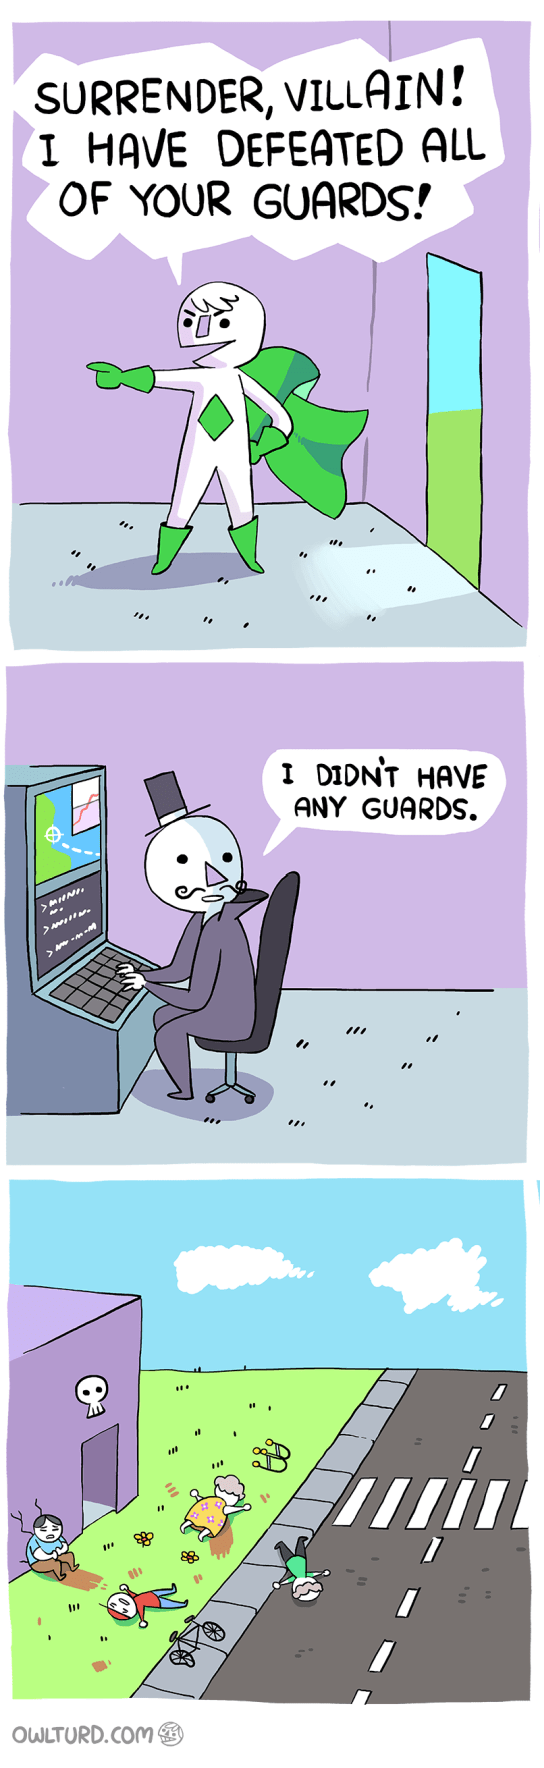 Cartoon - SURRENDER, VILLAIN! I HAVE DEFEATED ALL OF YOUR GUARDS! I DIDNT HAVE ANY GUARDS. my OWLTURD.COM 9